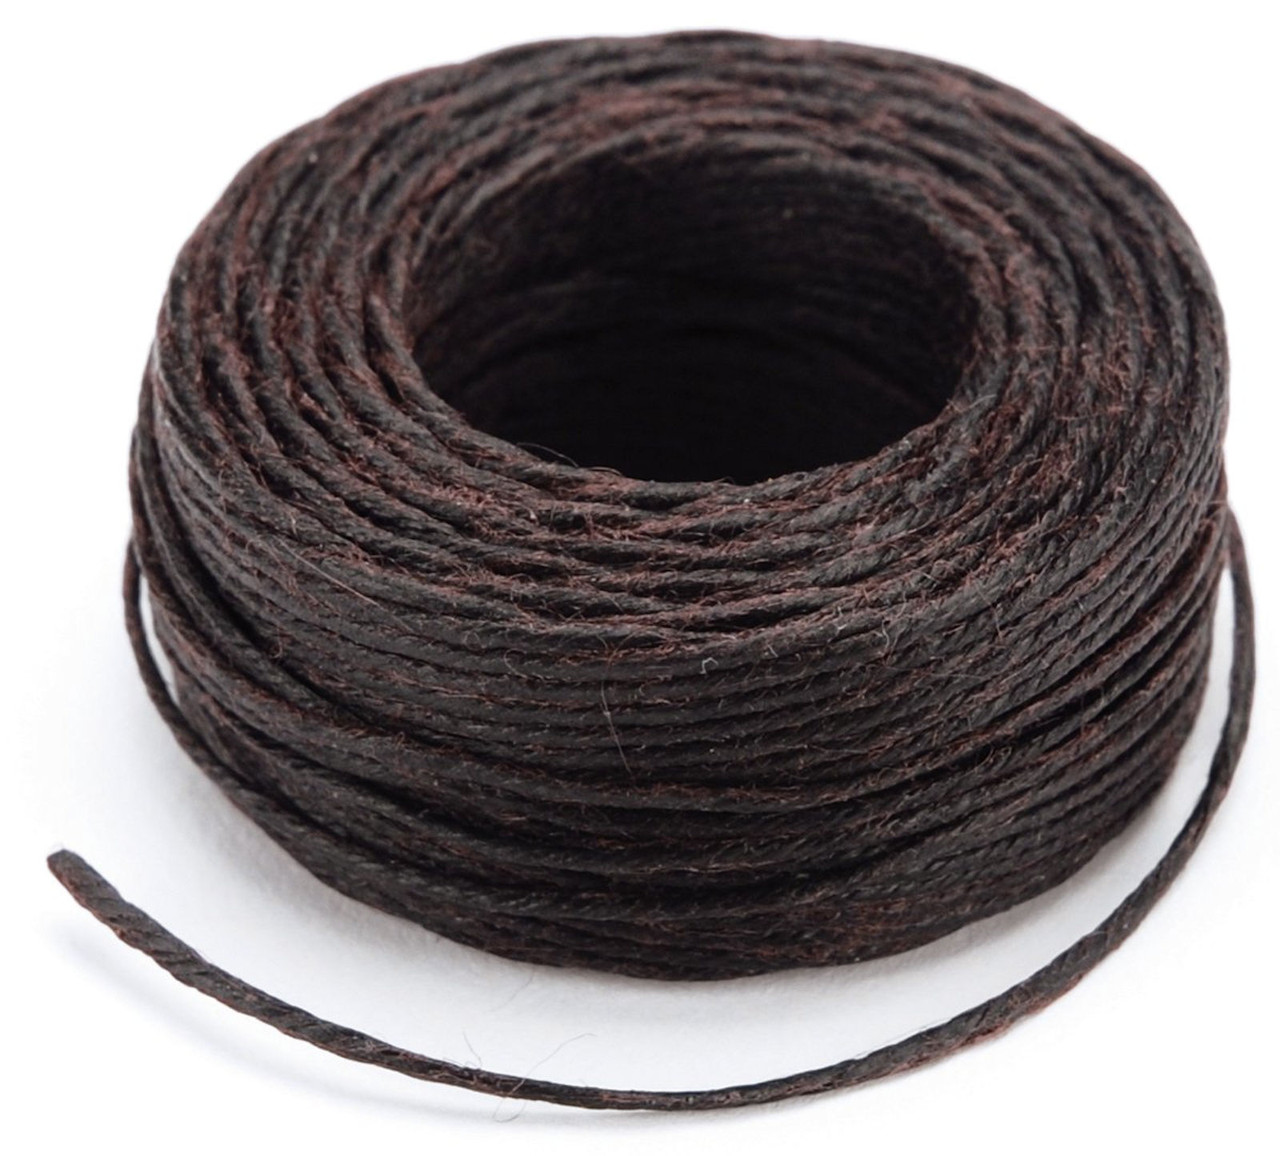 22.9 m Tandy Leather 1227-03 Waxed Nylon Thread White 25 yds.